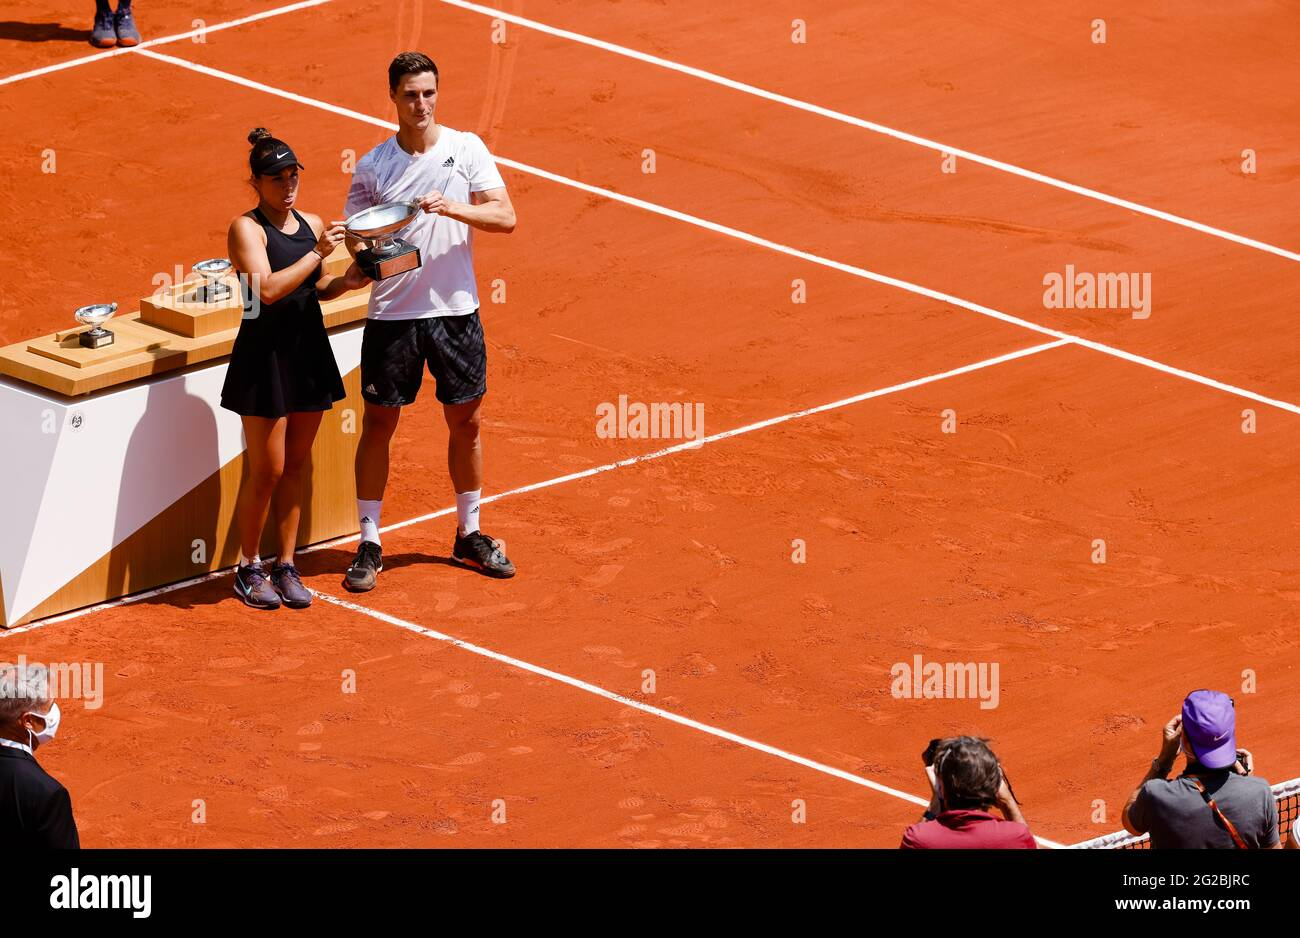 Paris, France. 10th June, 2021. Desirae Krawczyk from the USA and Joe Salisbury from GBR won the Mix Doubles final at the 2021 French Open Grand Slam tennis tournament in Roland Garros, Paris, France. Frank Molter/Alamy Live news Stock Photo